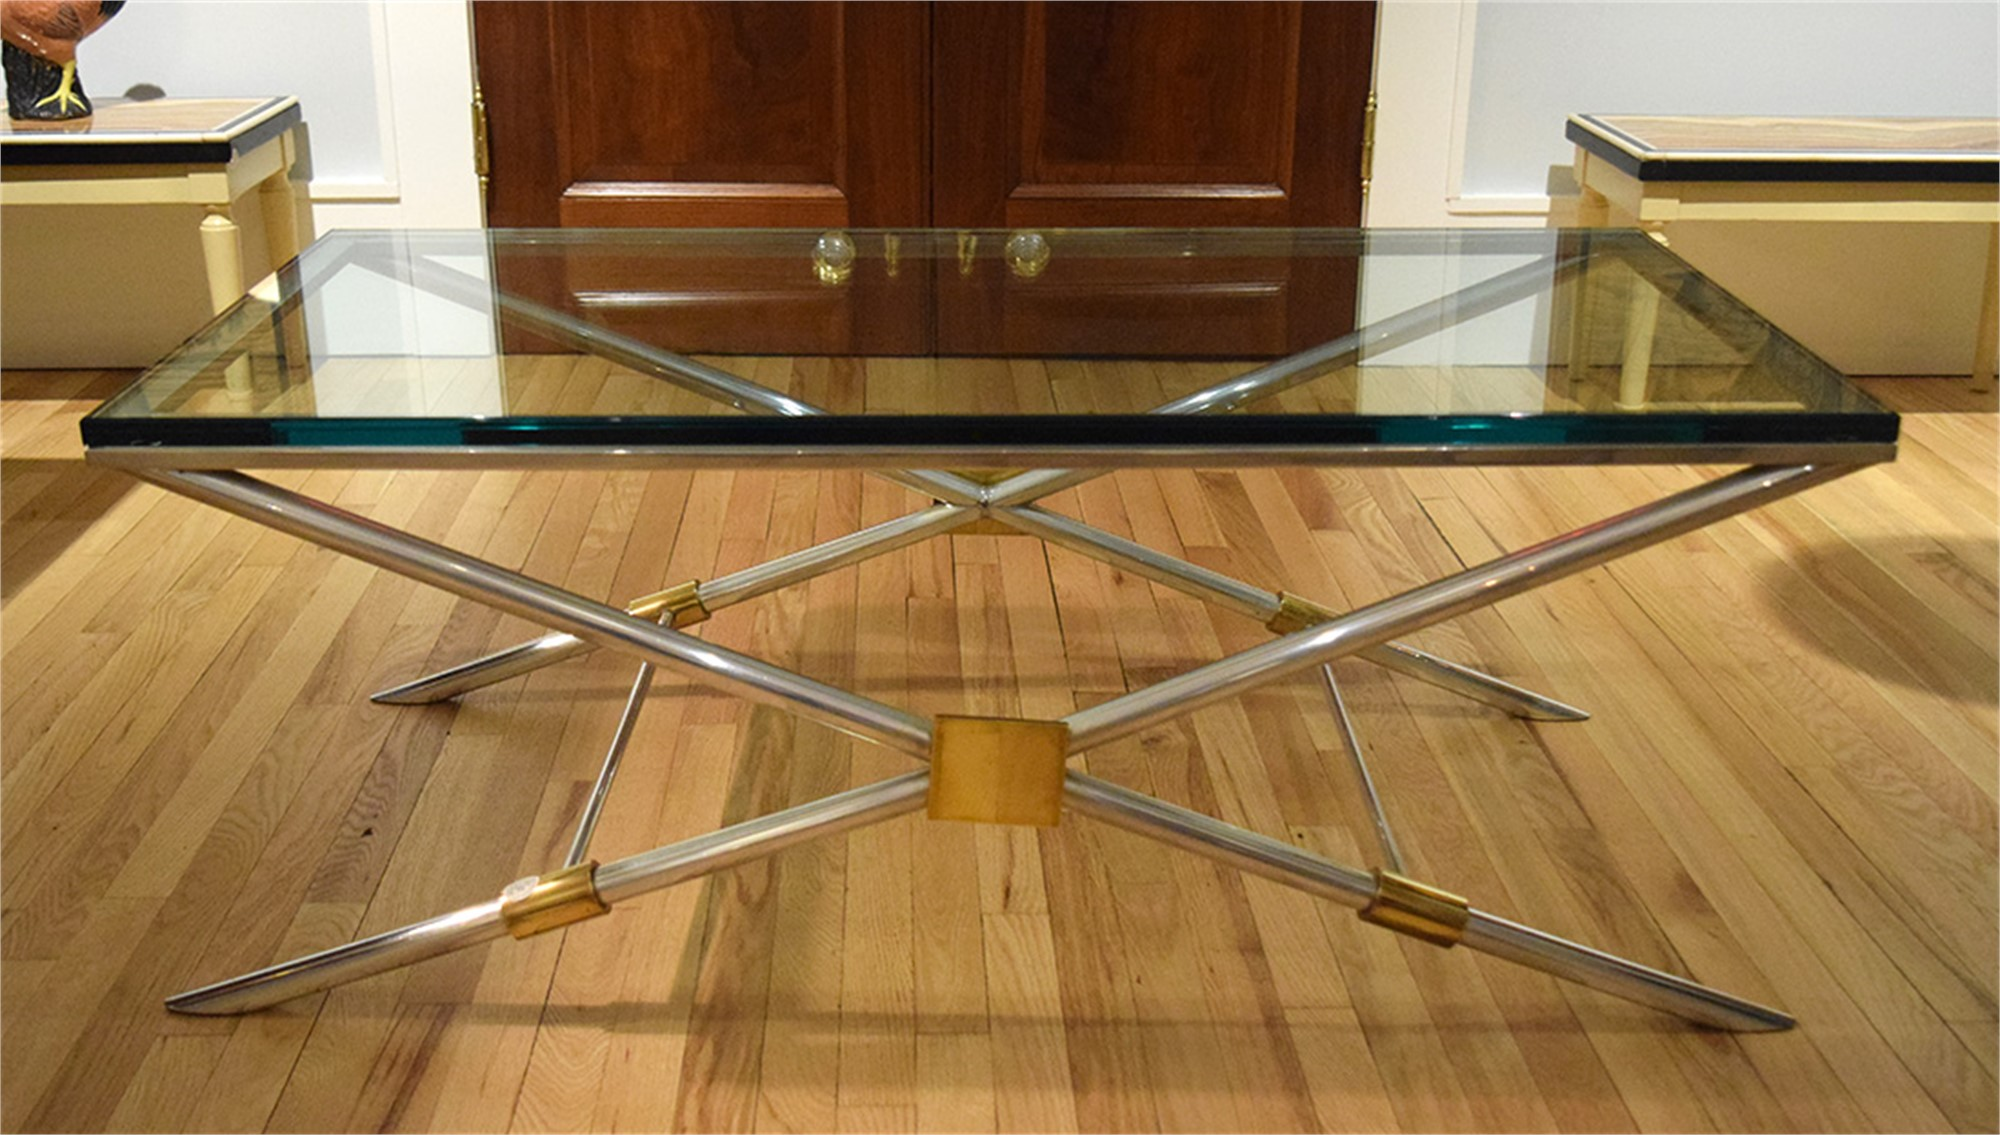 ALUMINUM AND BRASS COFFEE TABLE WITH GLASS TOP by John Vesey